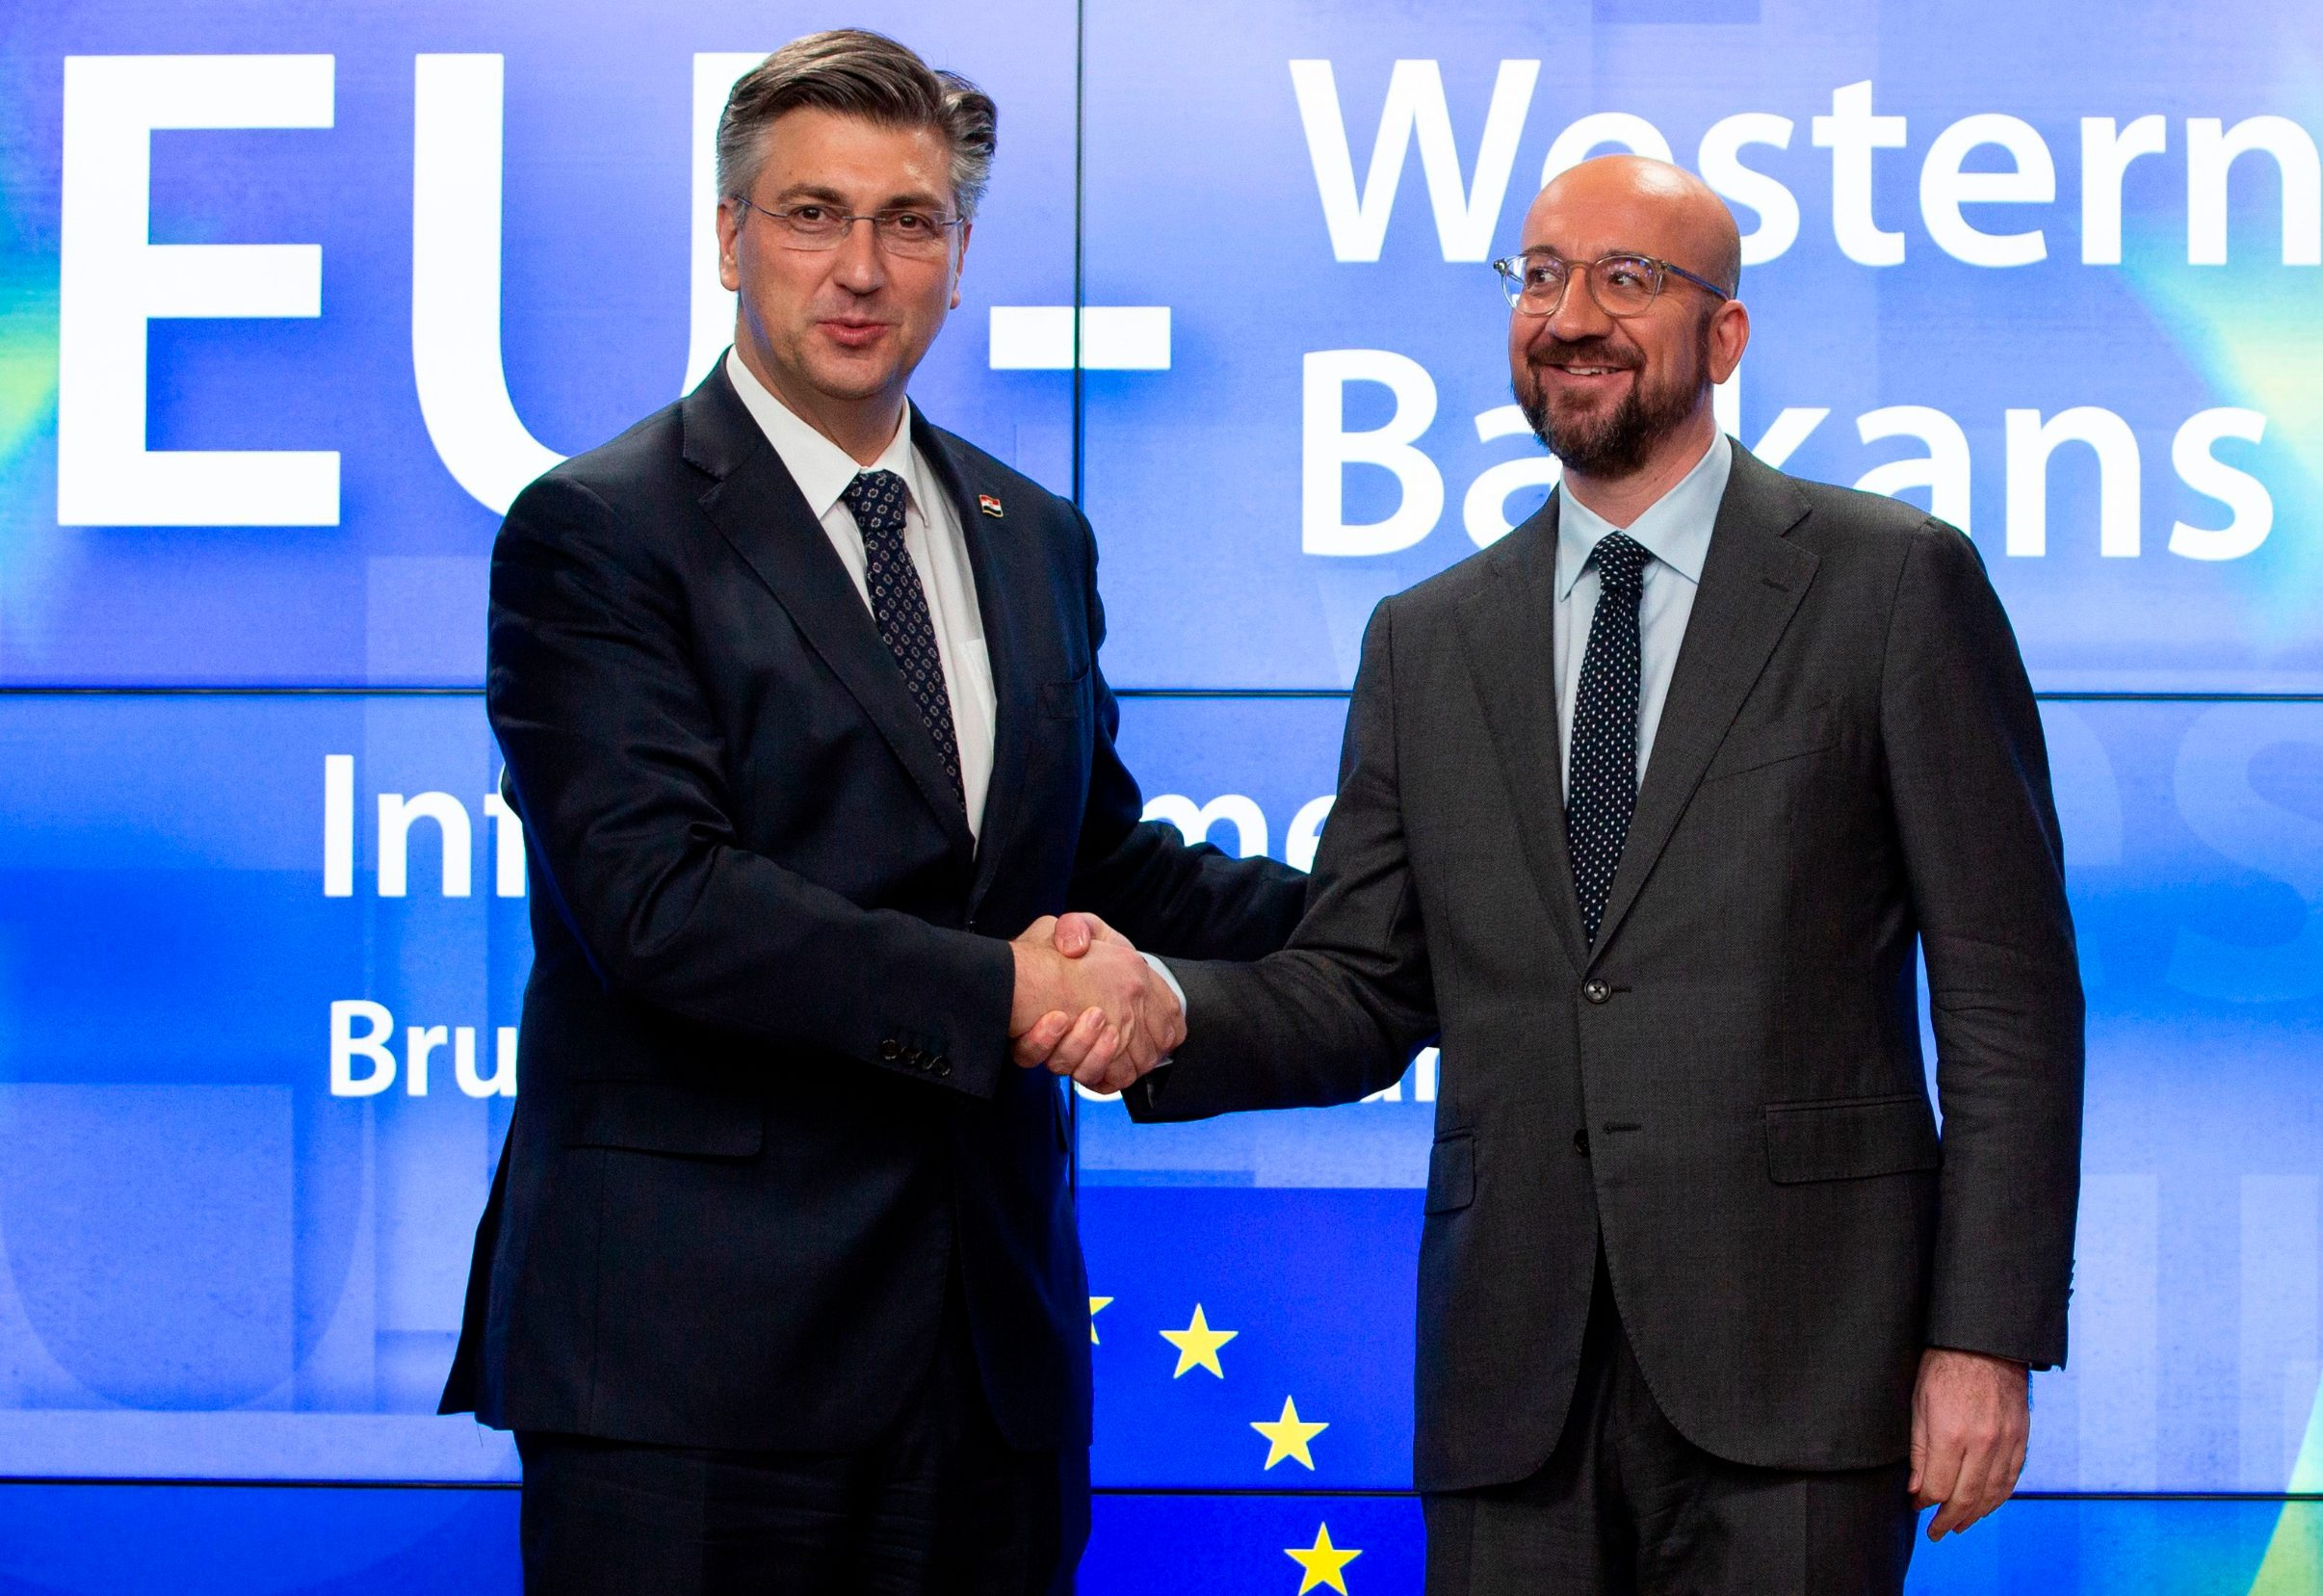 Croatian Prime Minister Andrej Plenkovic (L) is greeted by European Council President Charles Michel as he arrives for an EU-Western Balkans Summit at the EU headquarters in Brussels on February 16, 2020. (Photo by Virginia Mayo / POOL / AFP)